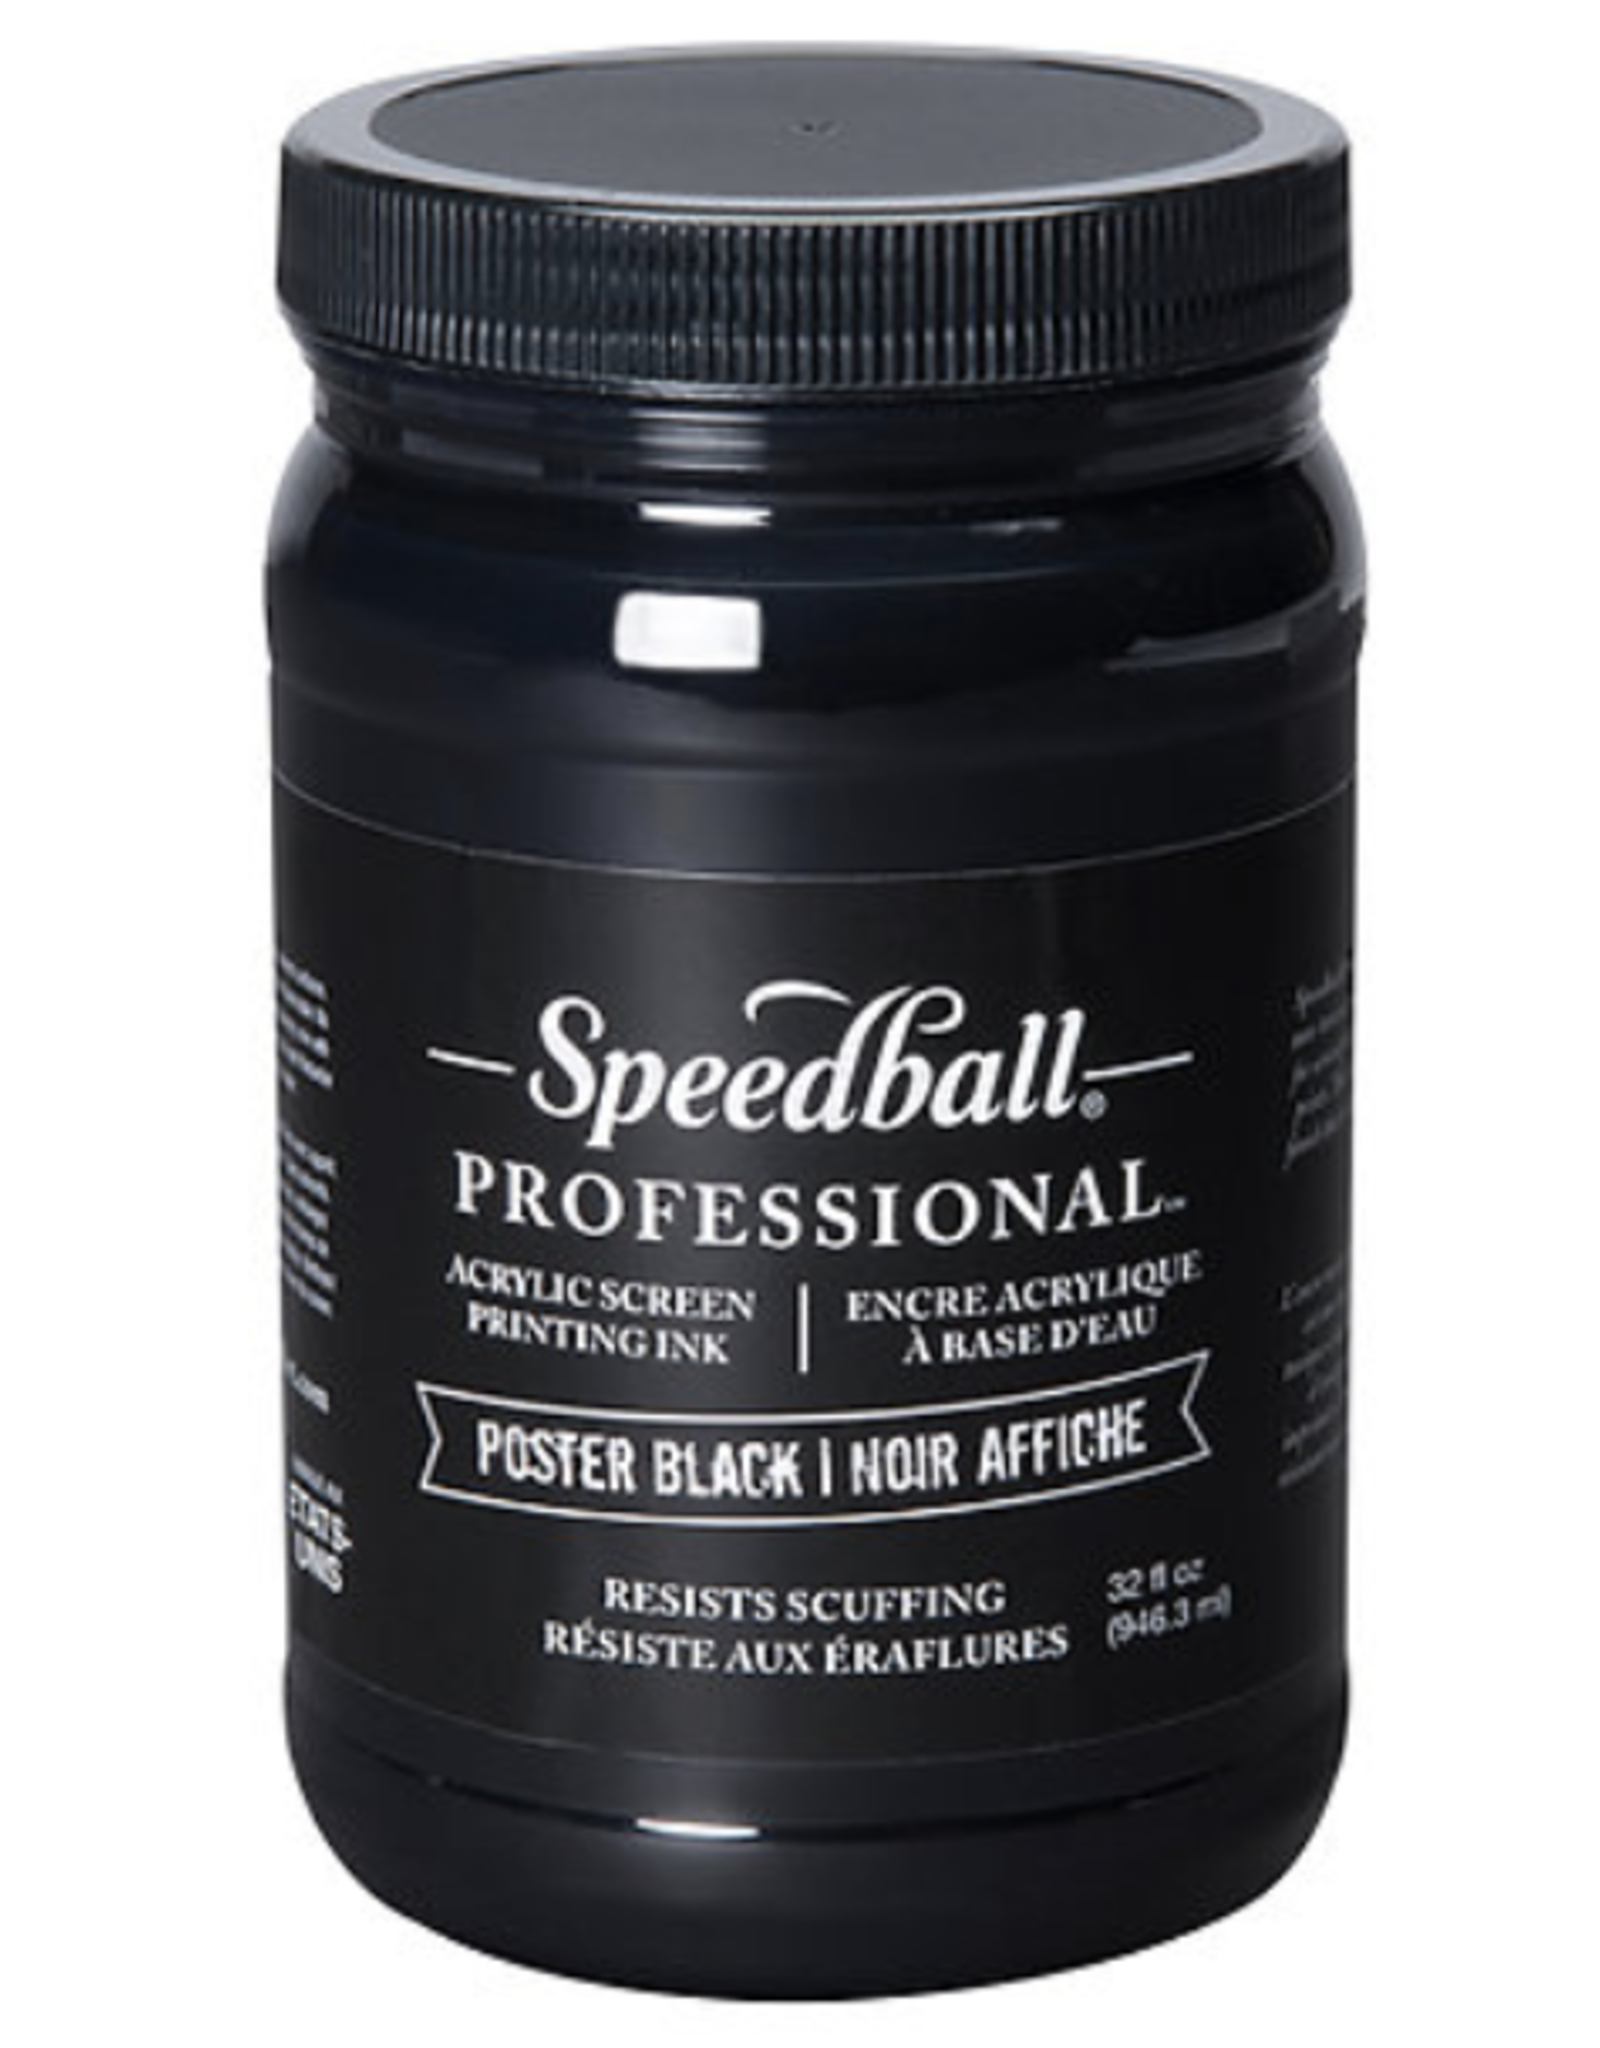 Professional Silk Screen Ink Acrylic Poster Black, 32oz